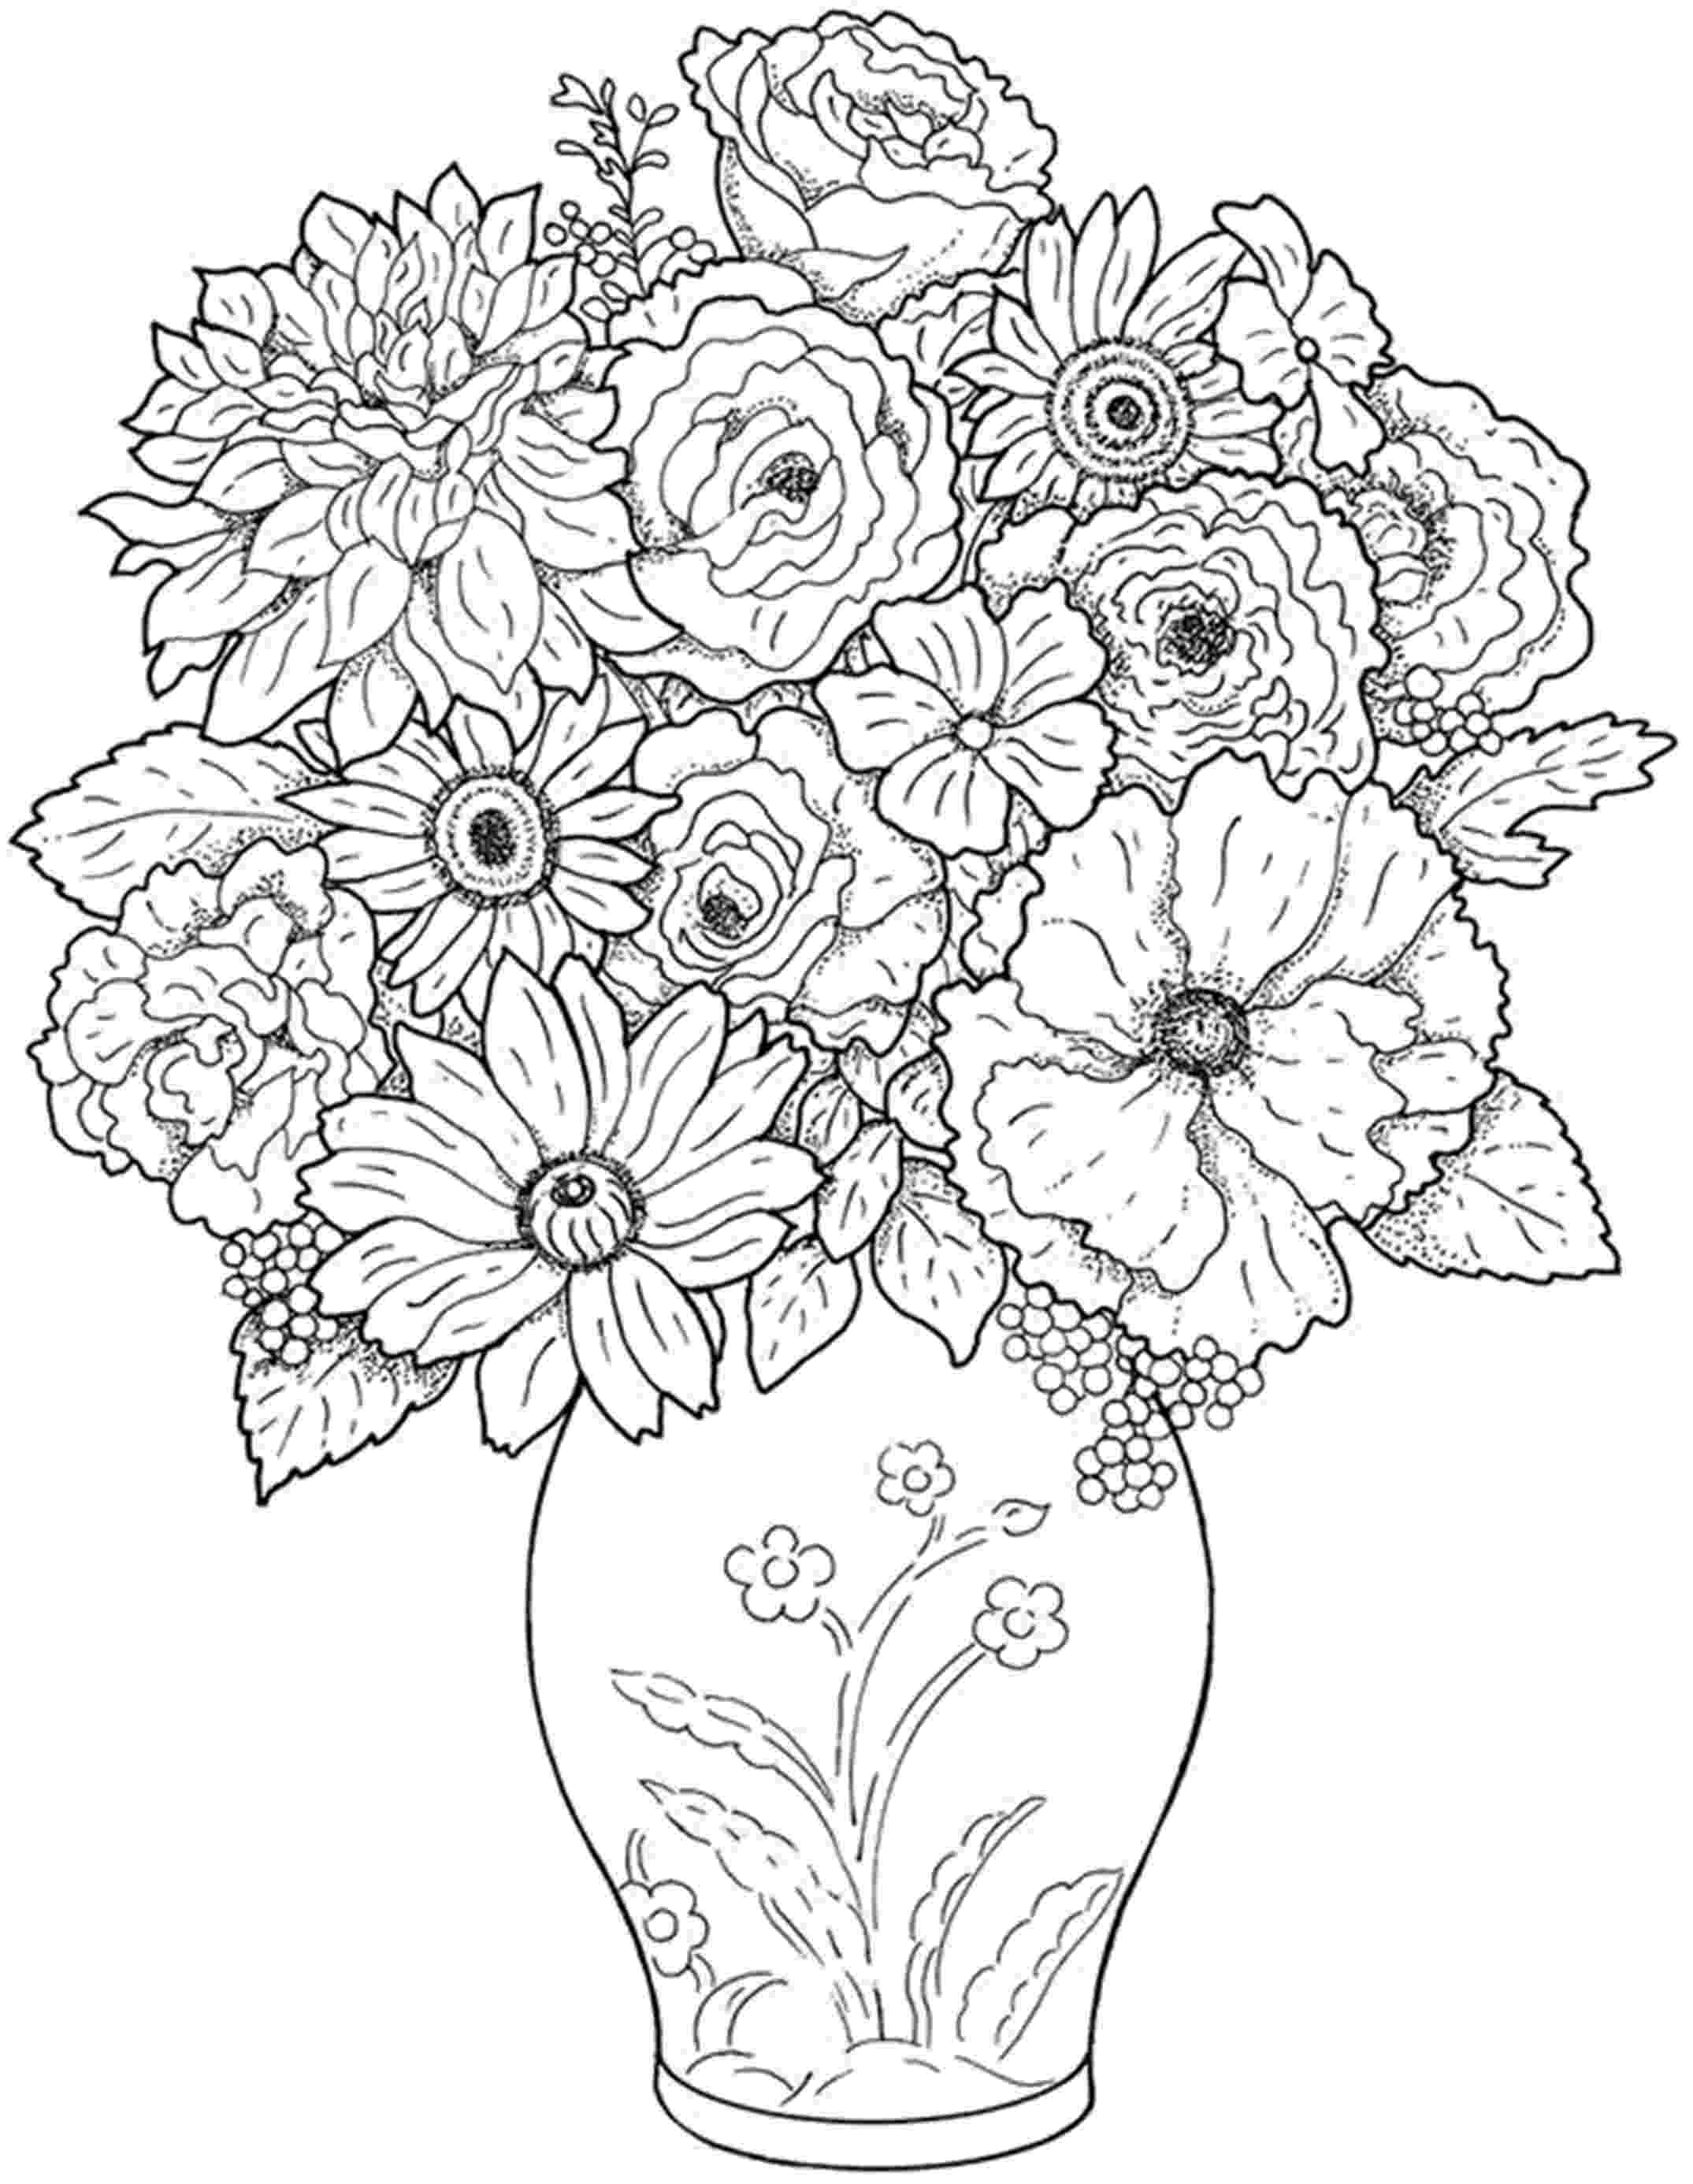 pictures of flowers to print and color free printable flower coloring pages for kids best of print color and flowers pictures to